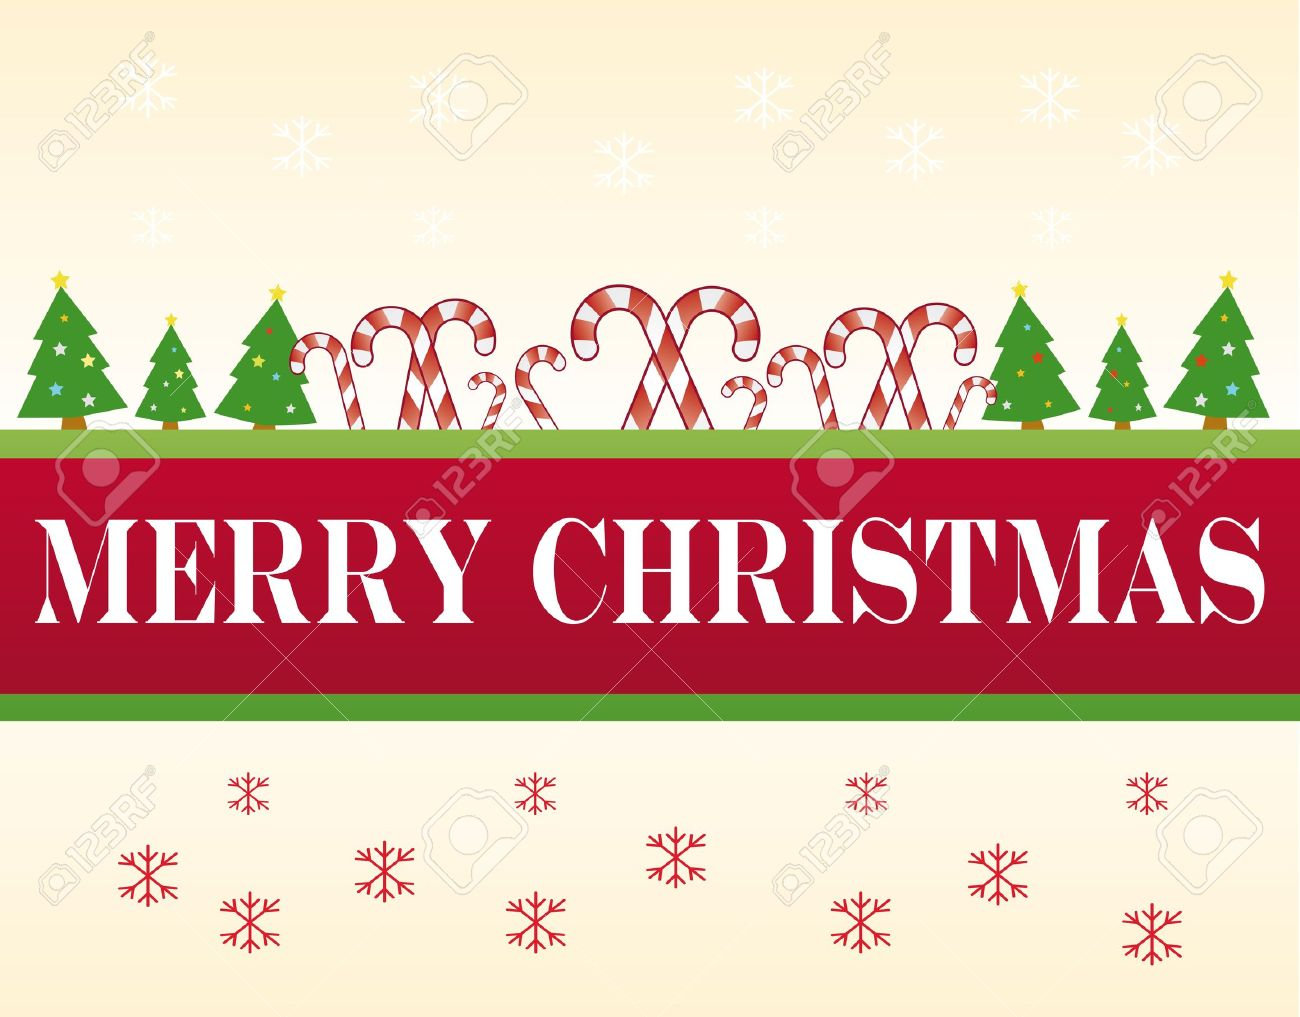 xmas banner with merry christmas text royalty free cliparts vectors and stock illustration image 11137165 xmas banner with merry christmas text